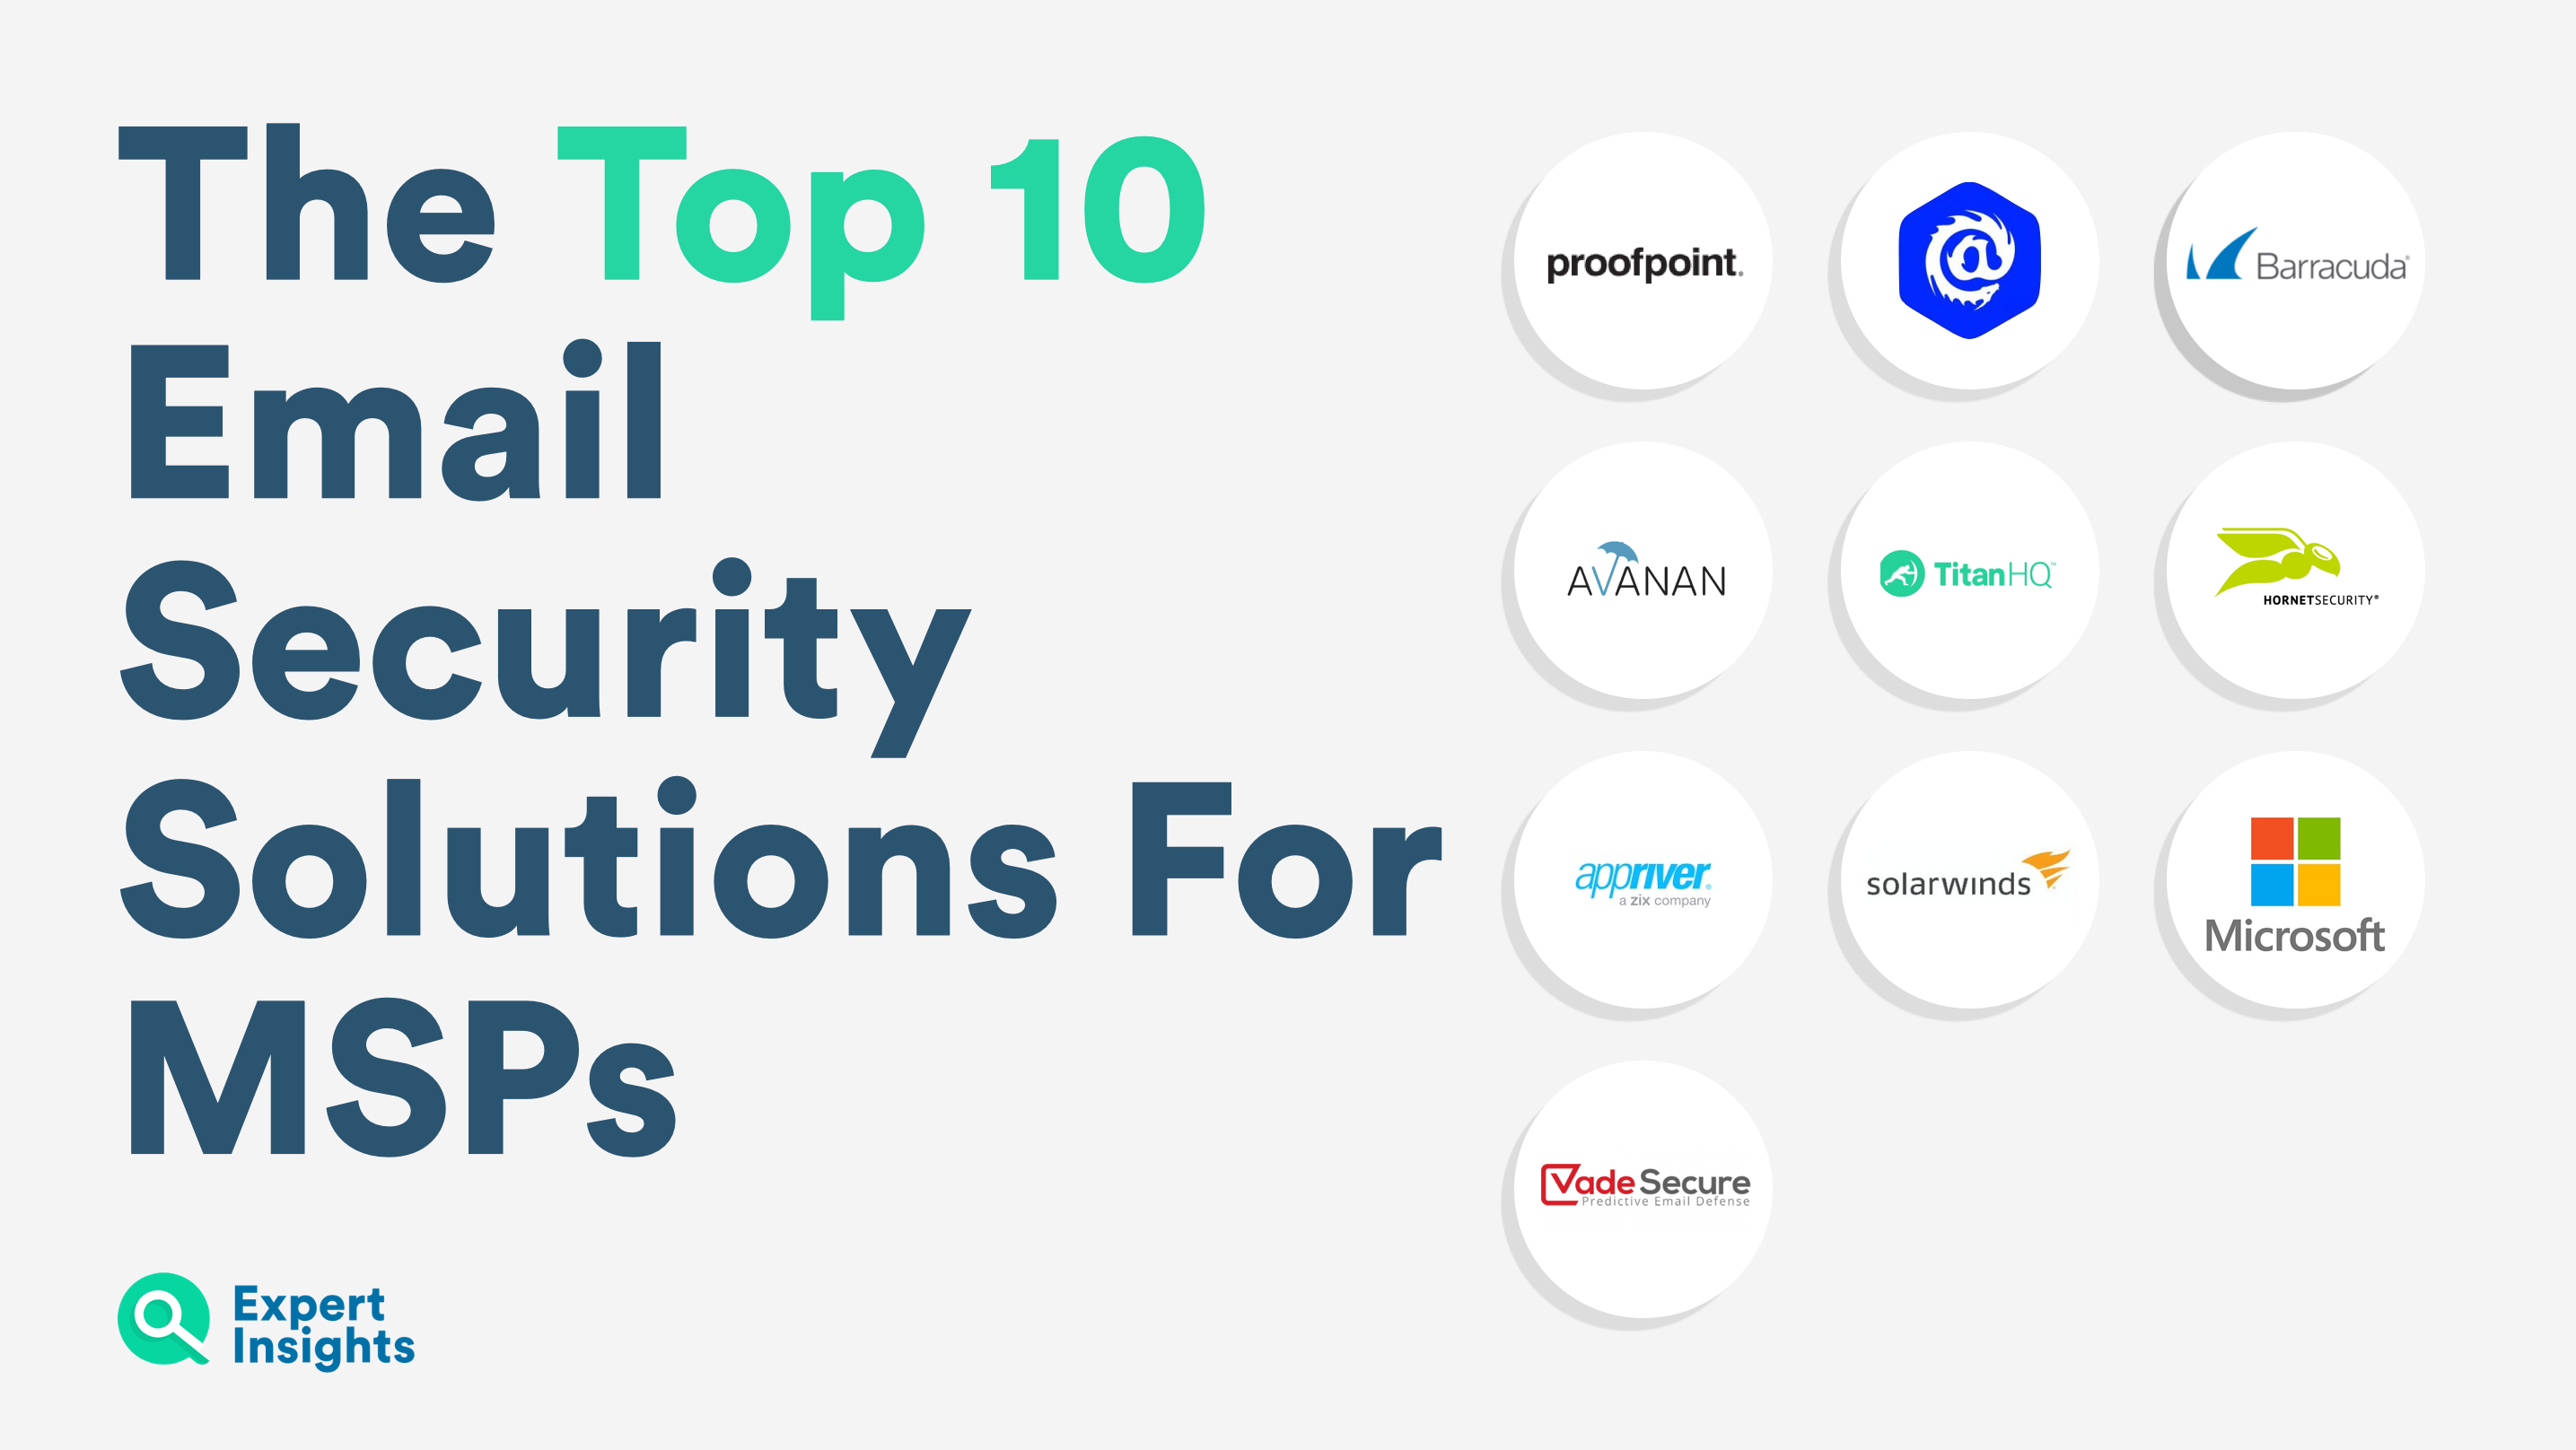 Top 10 Email Security Solutions for MSPs - Expert Insights